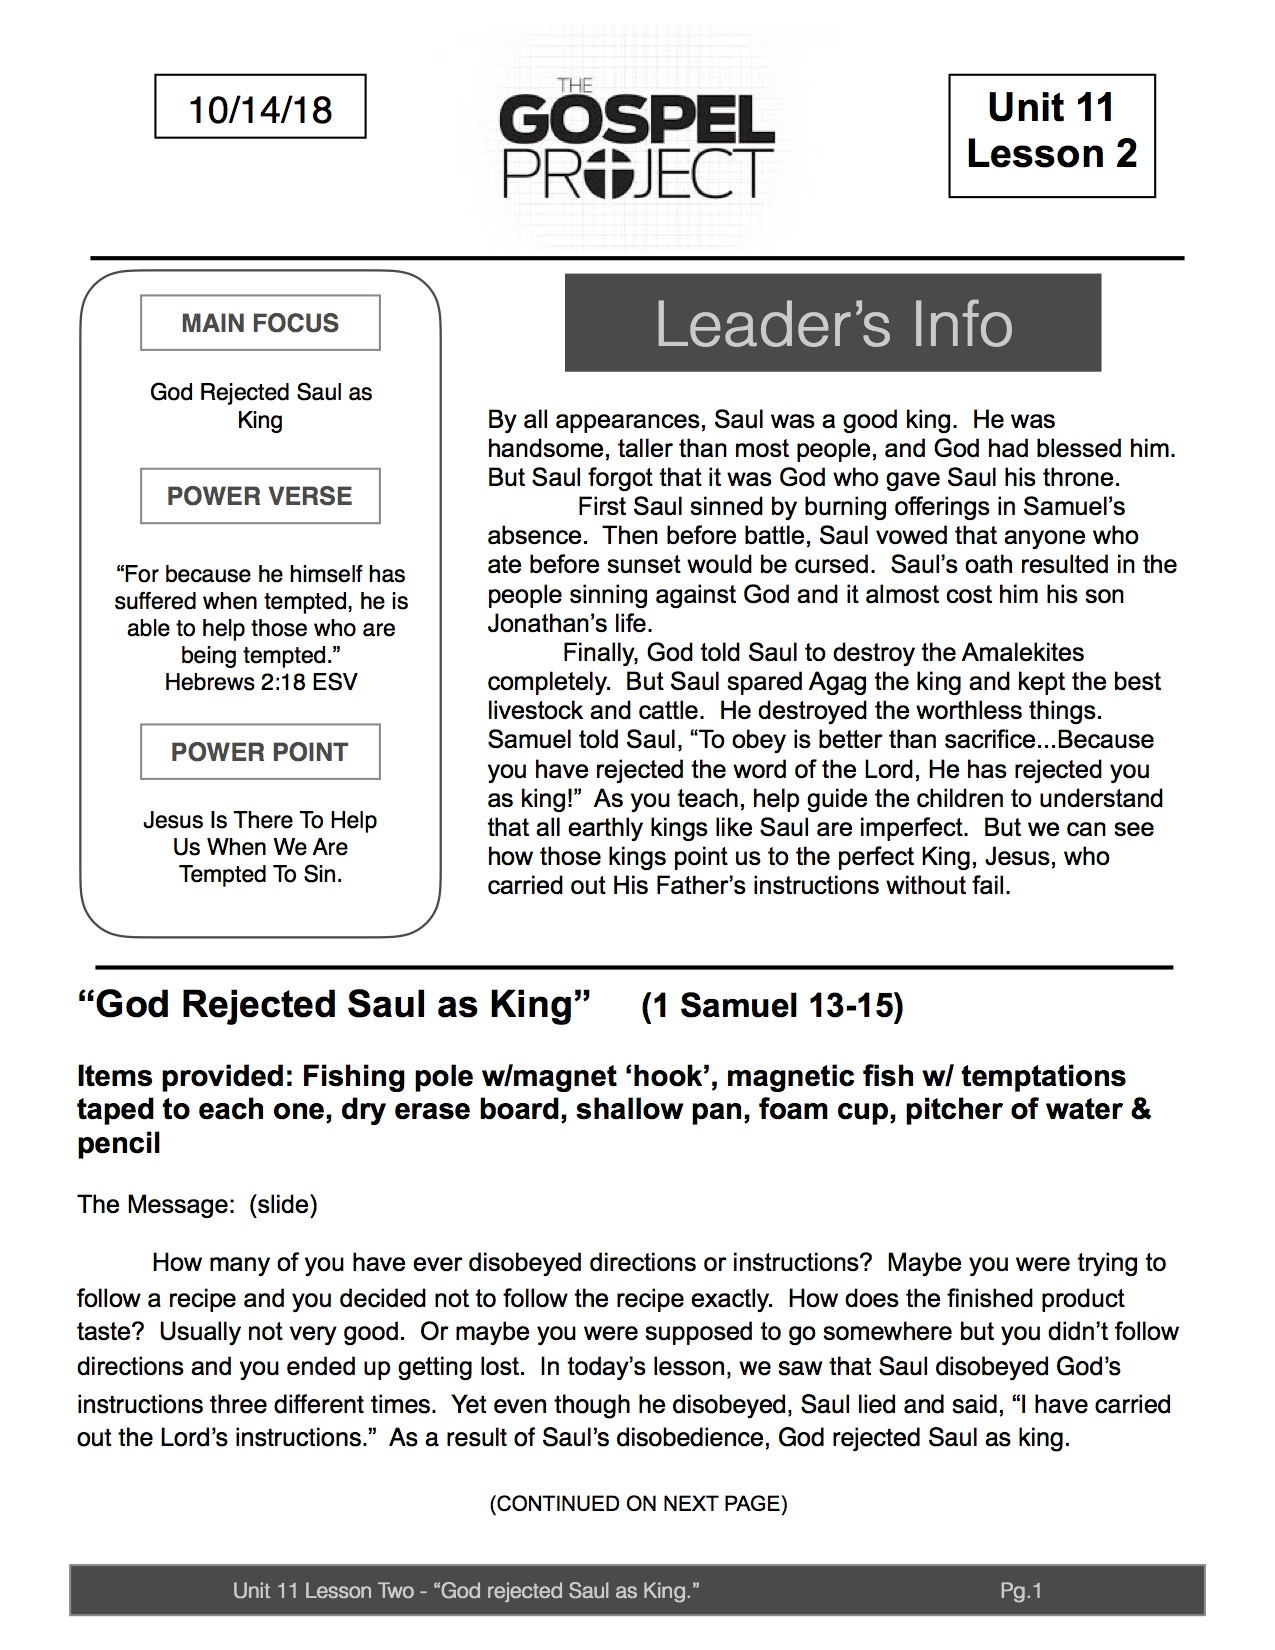 U11 L2 God Rejected Saul as King pg1  Lead Lesson (1)